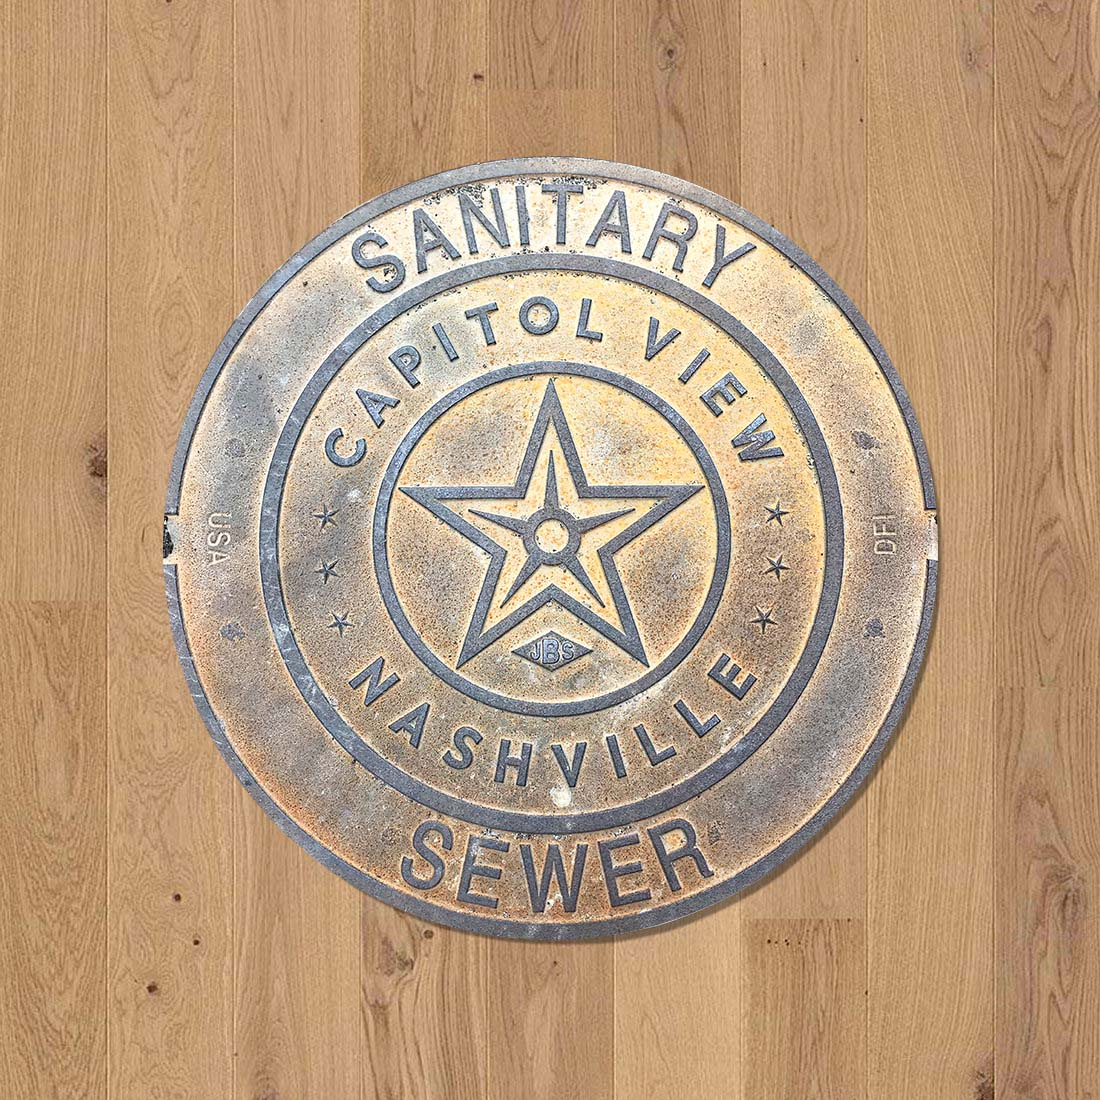 SOUTH SERIES - Sewer Cover Doormat, Trivet, Coaster - Nashville, TN